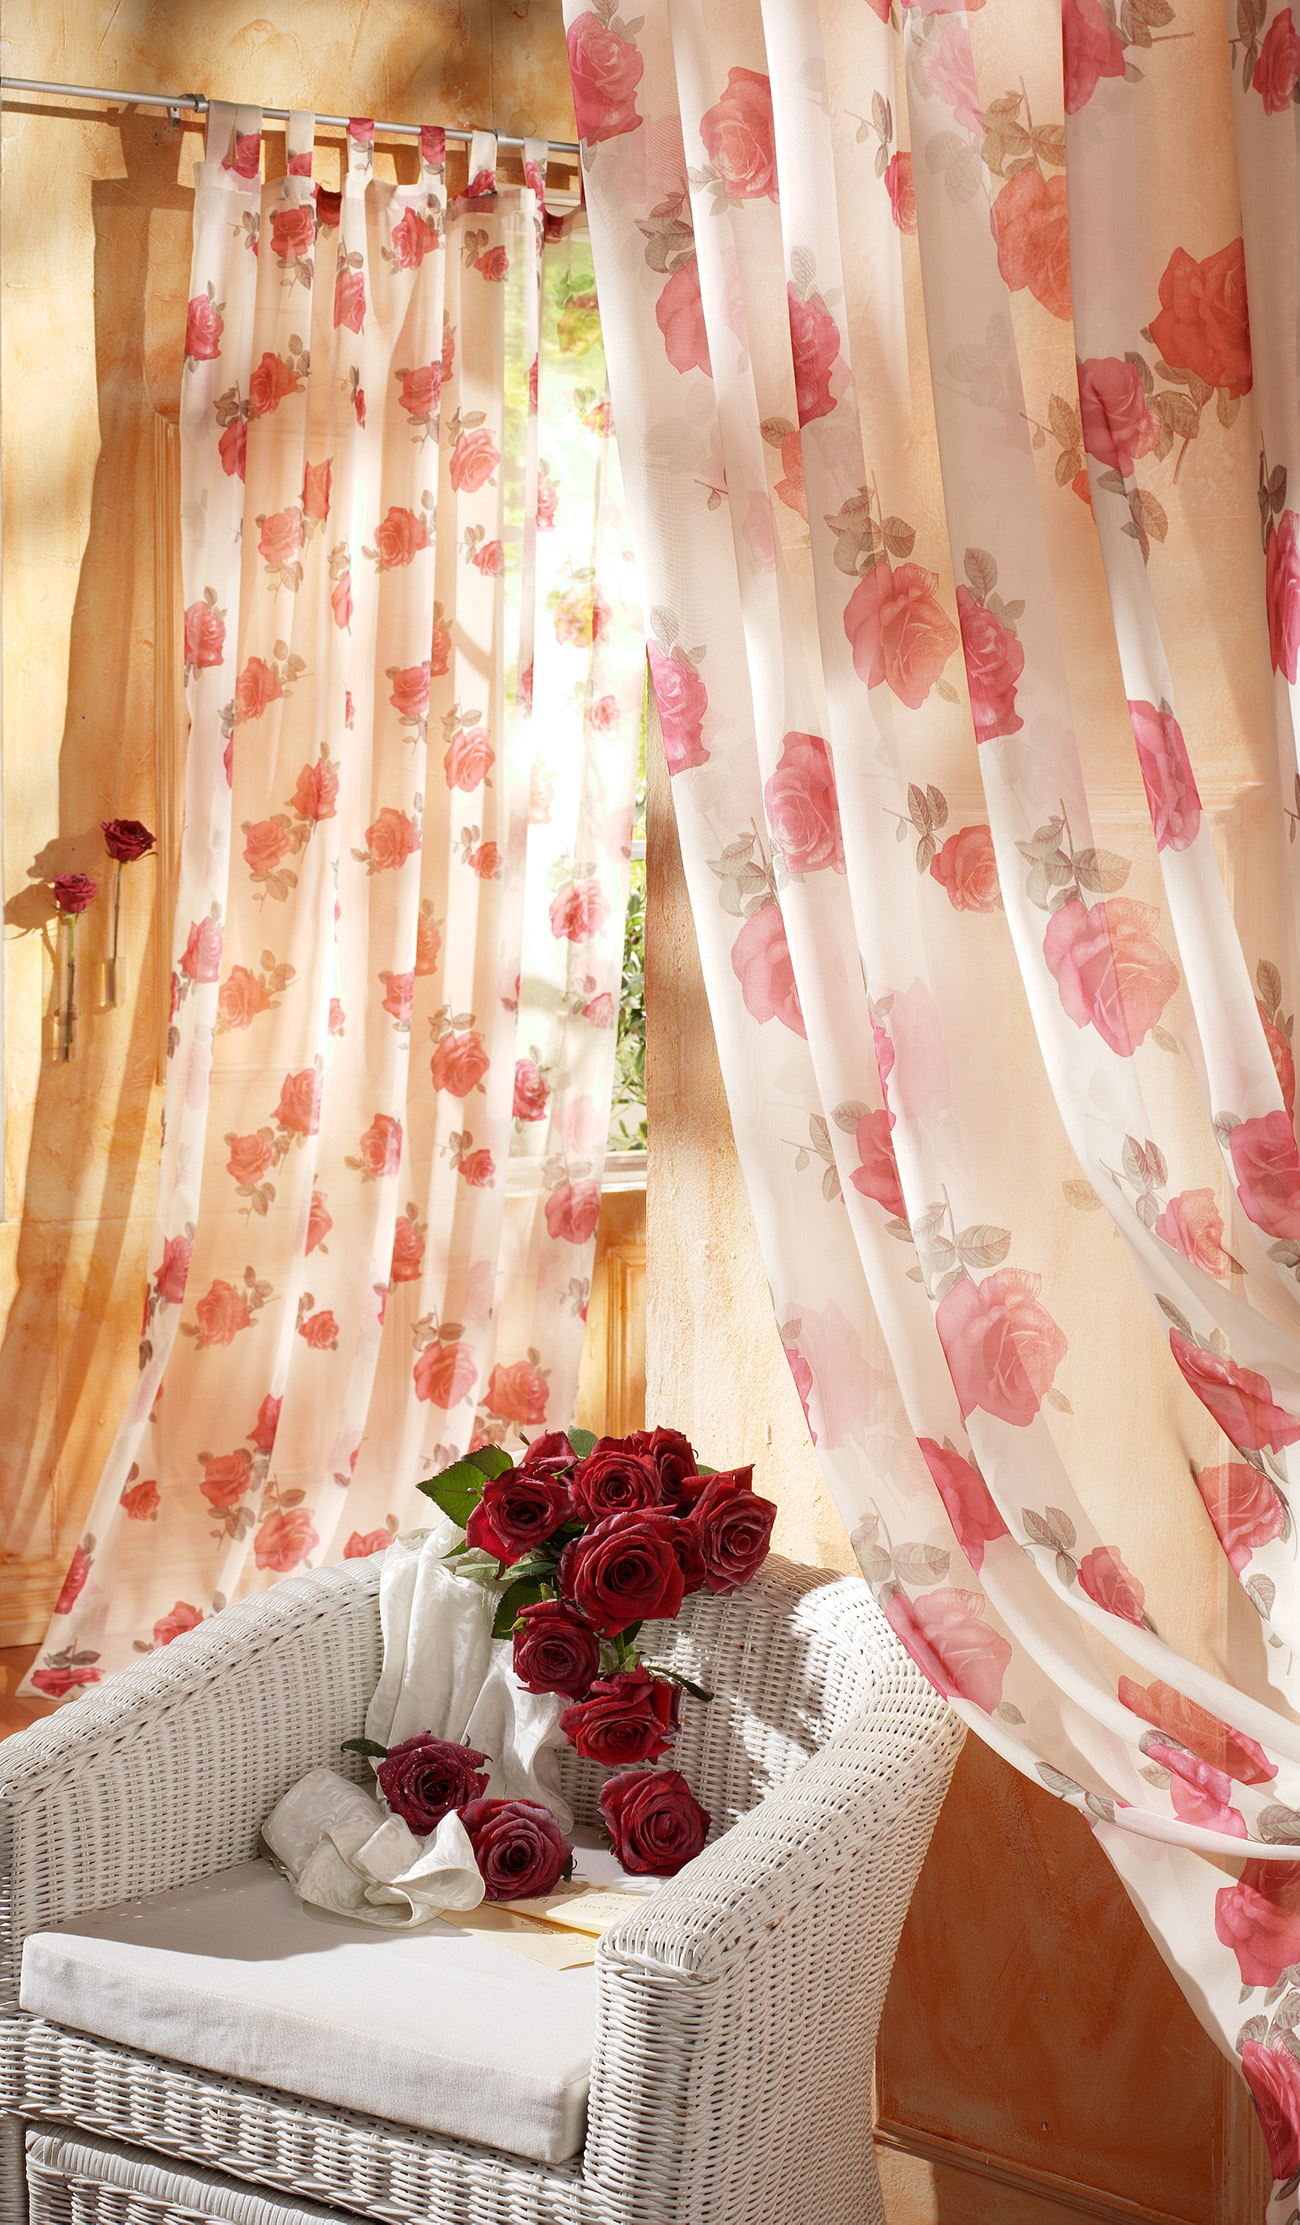 Rose floral curtains and chair 50324